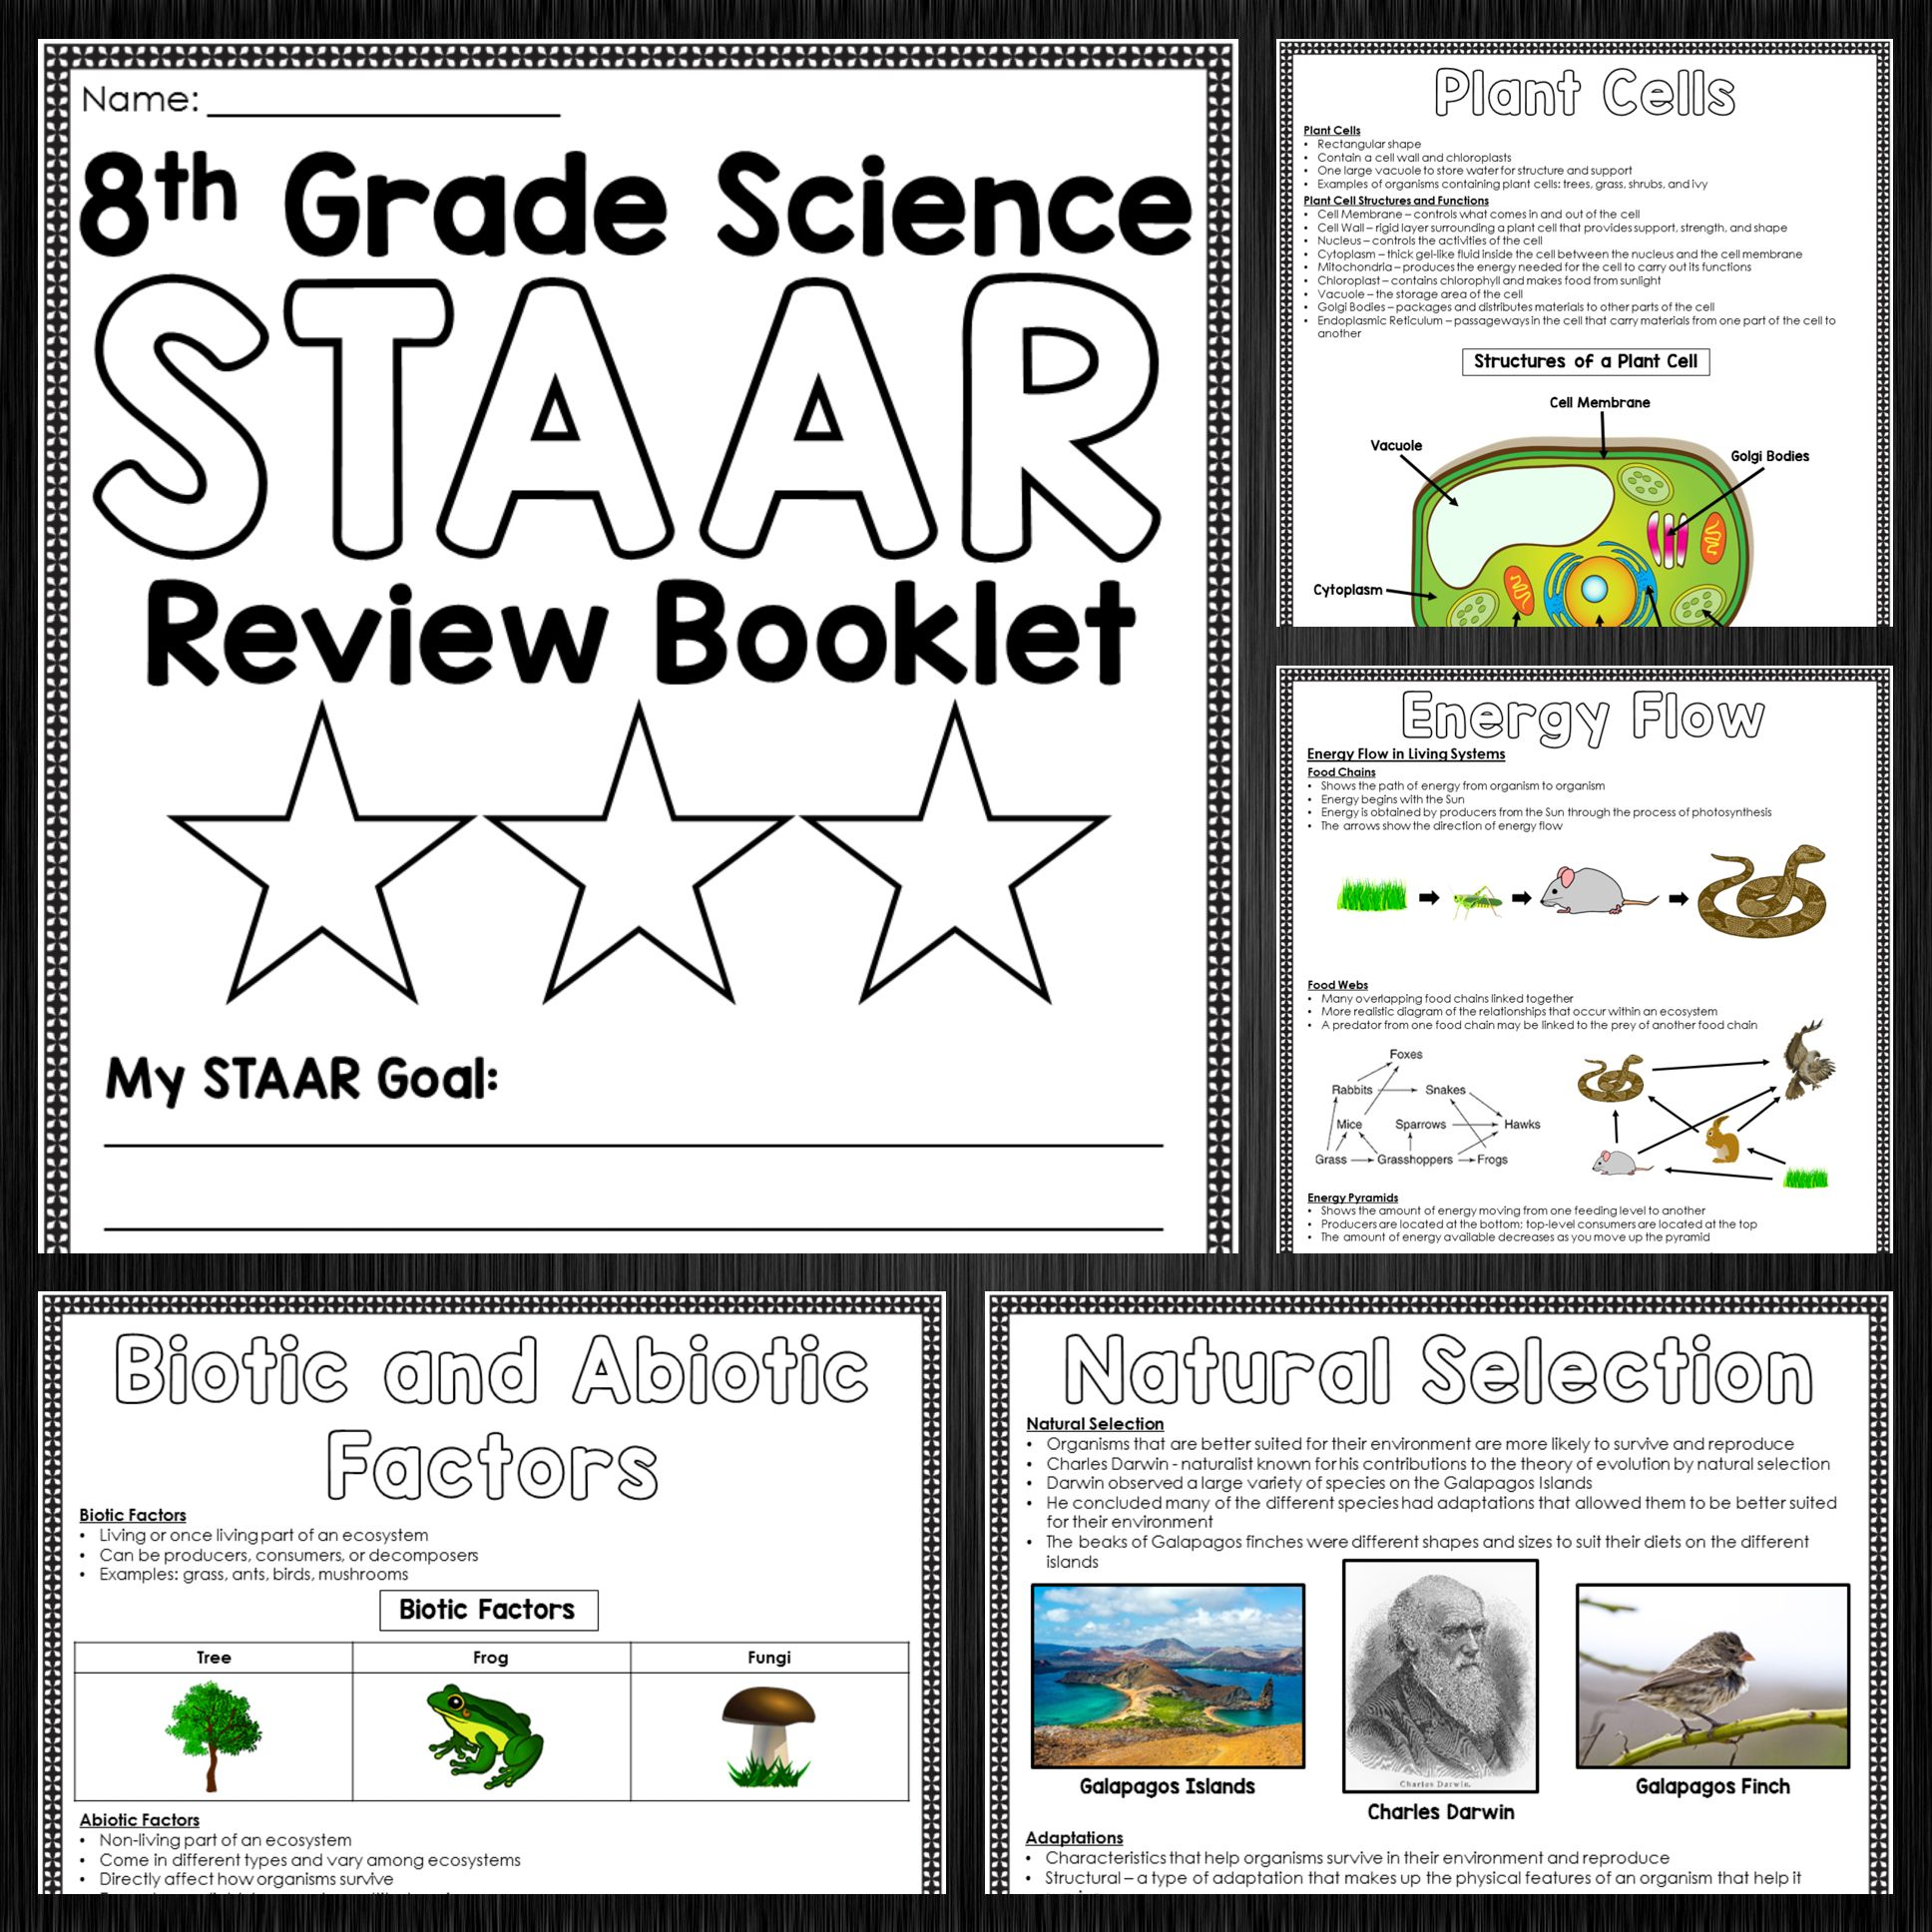 8th Grade Science Staar Review - RankTechnology [ 1936 x 1936 Pixel ]